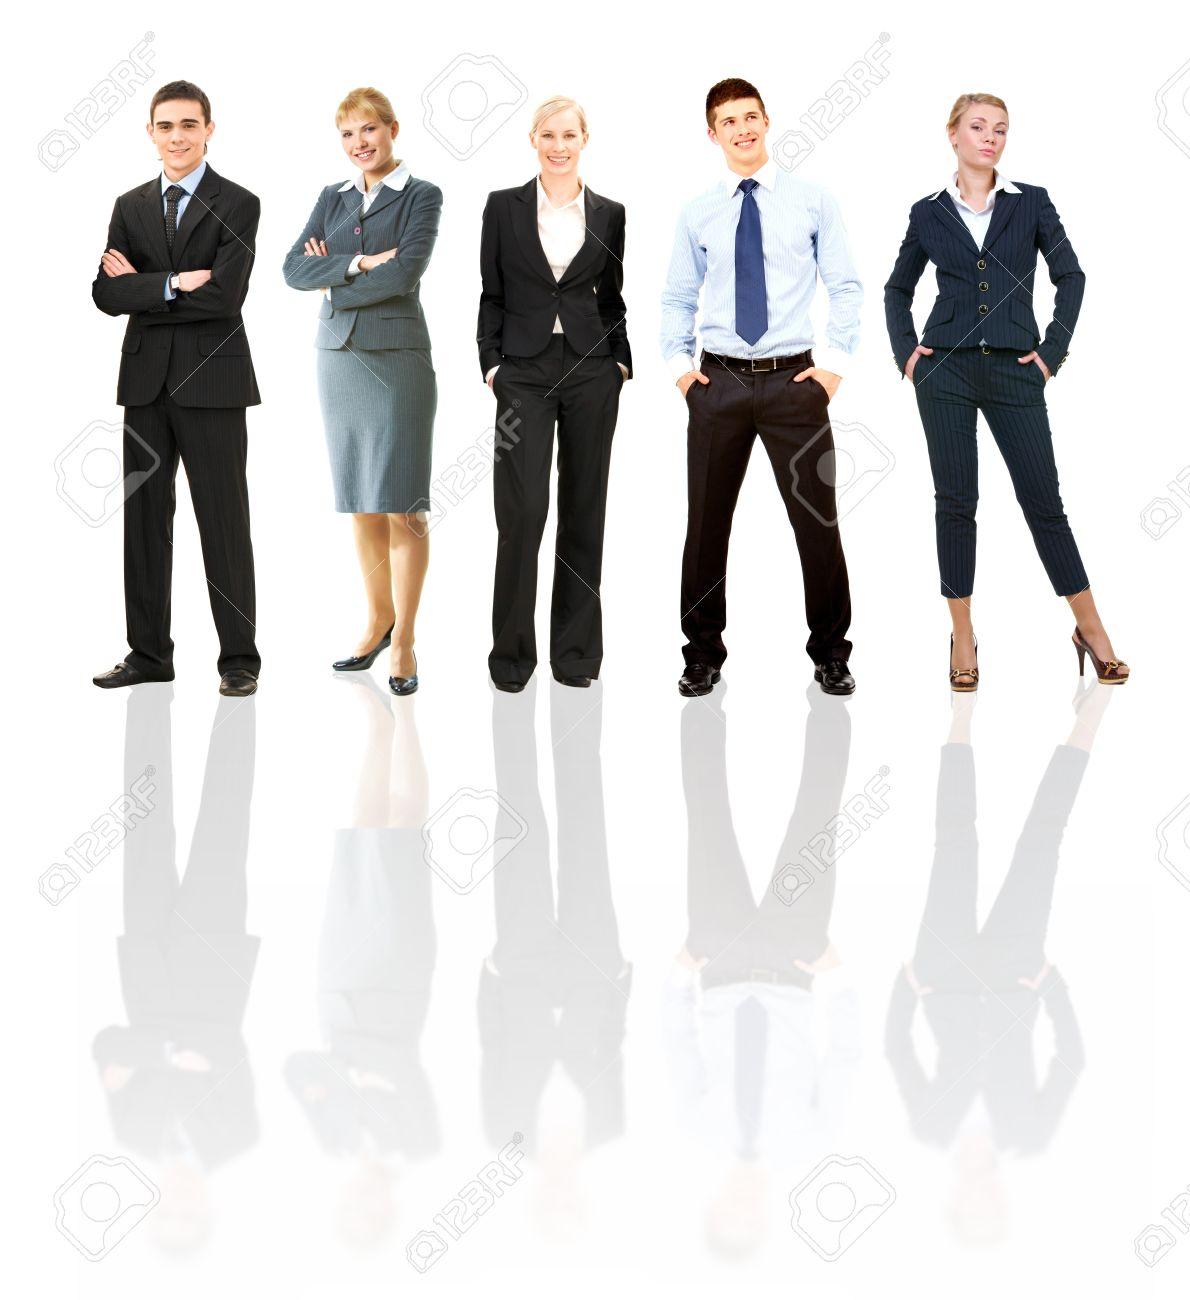 Collage of several business people posing before camera Stock Photo - 7463768